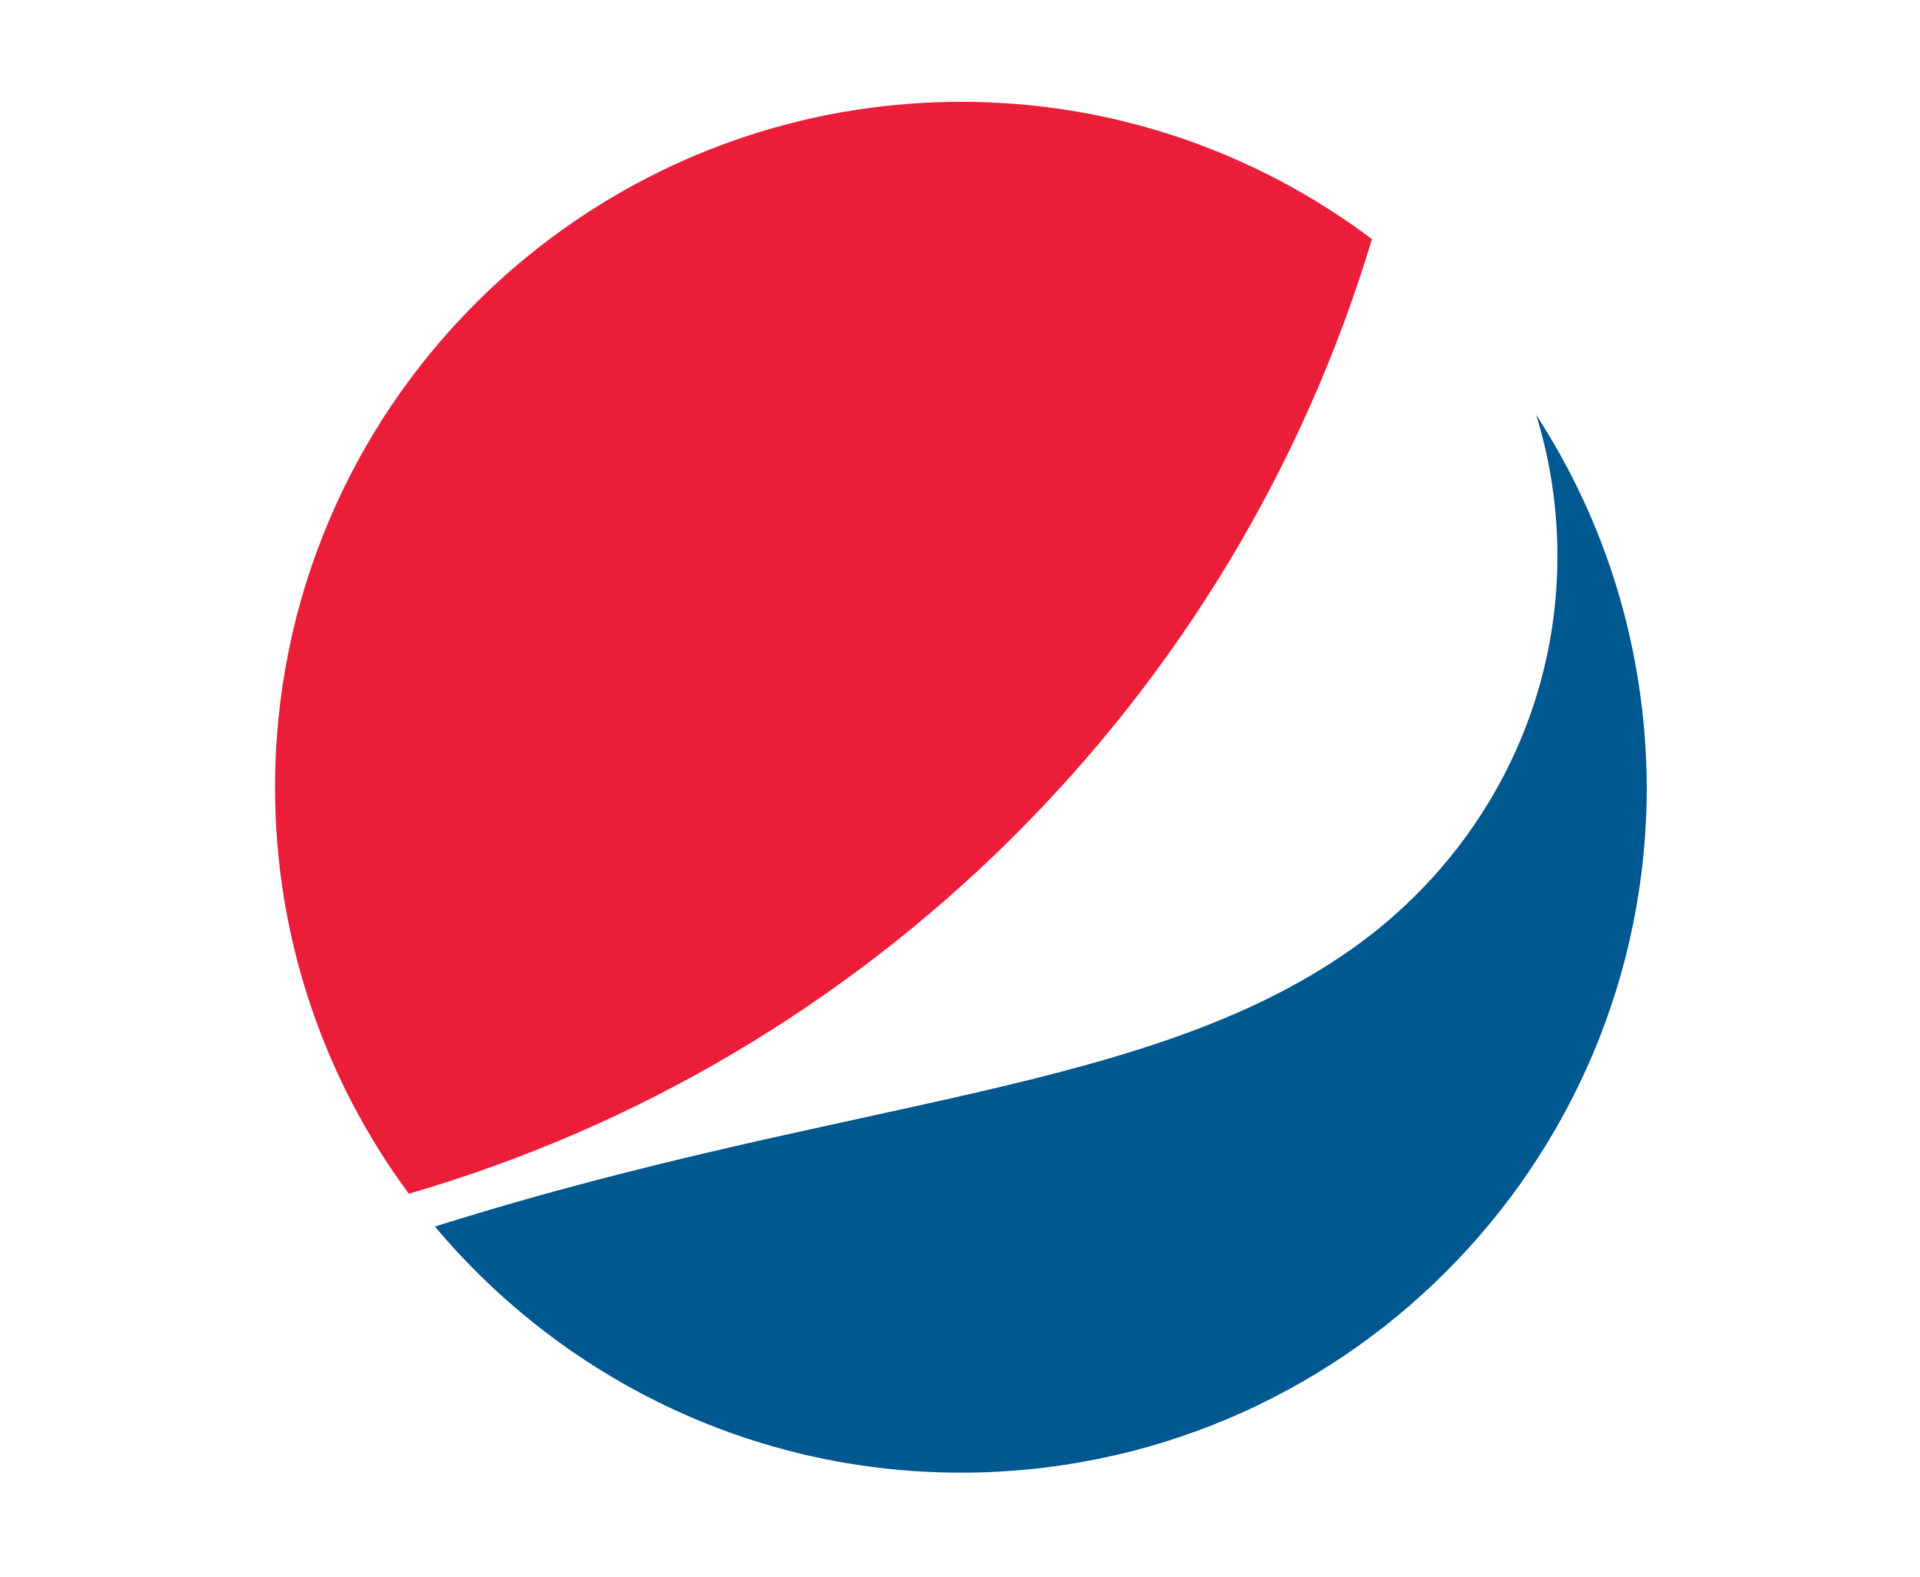 Marketing Mix of Pepsi | 4Ps of Marketing Mix of Pepsi